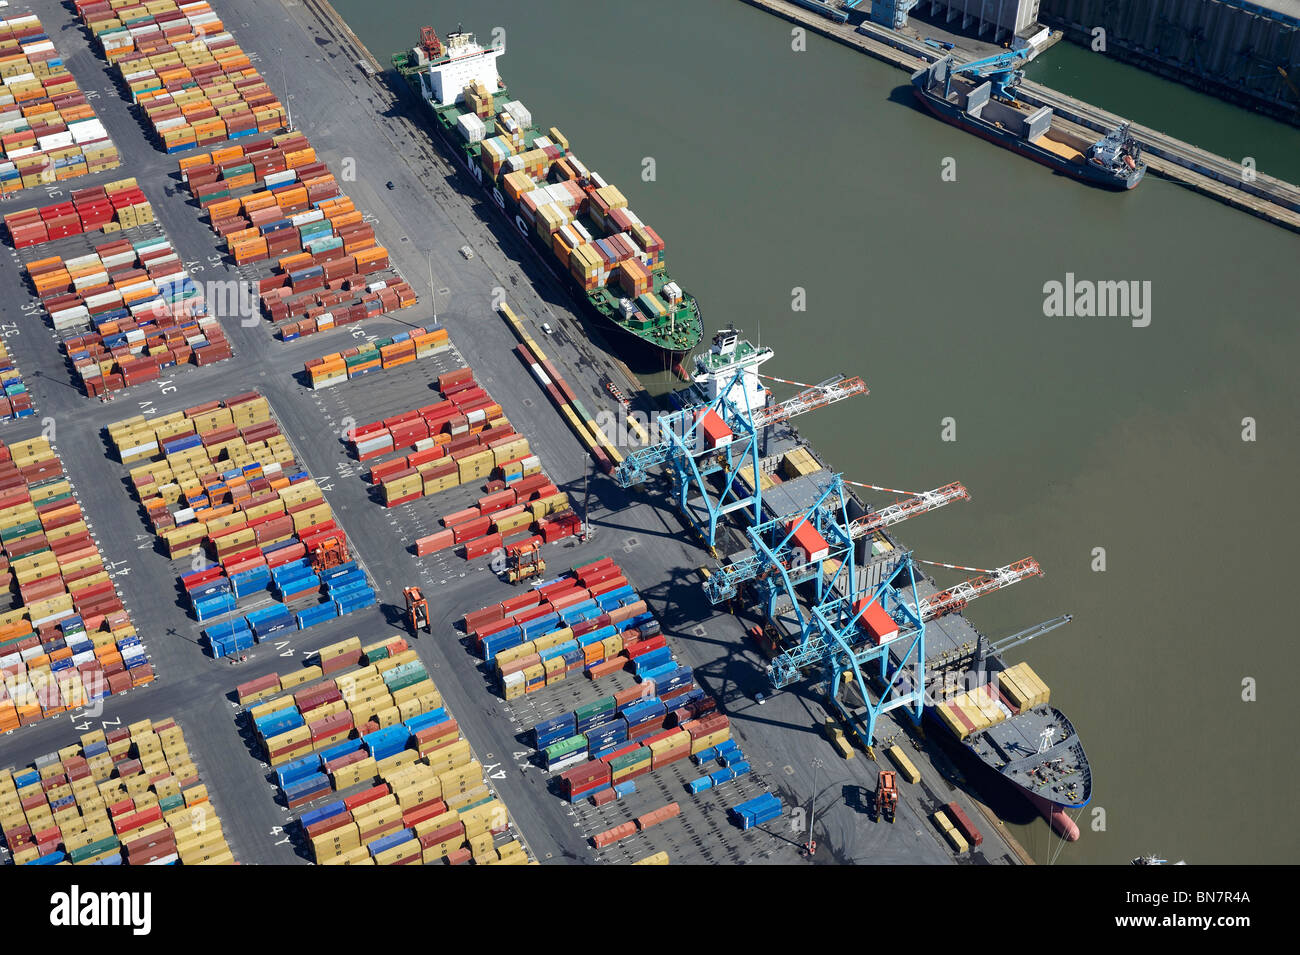 Ships loading at Bootle Docks, Liverpool , from the air, North West England - Stock Image